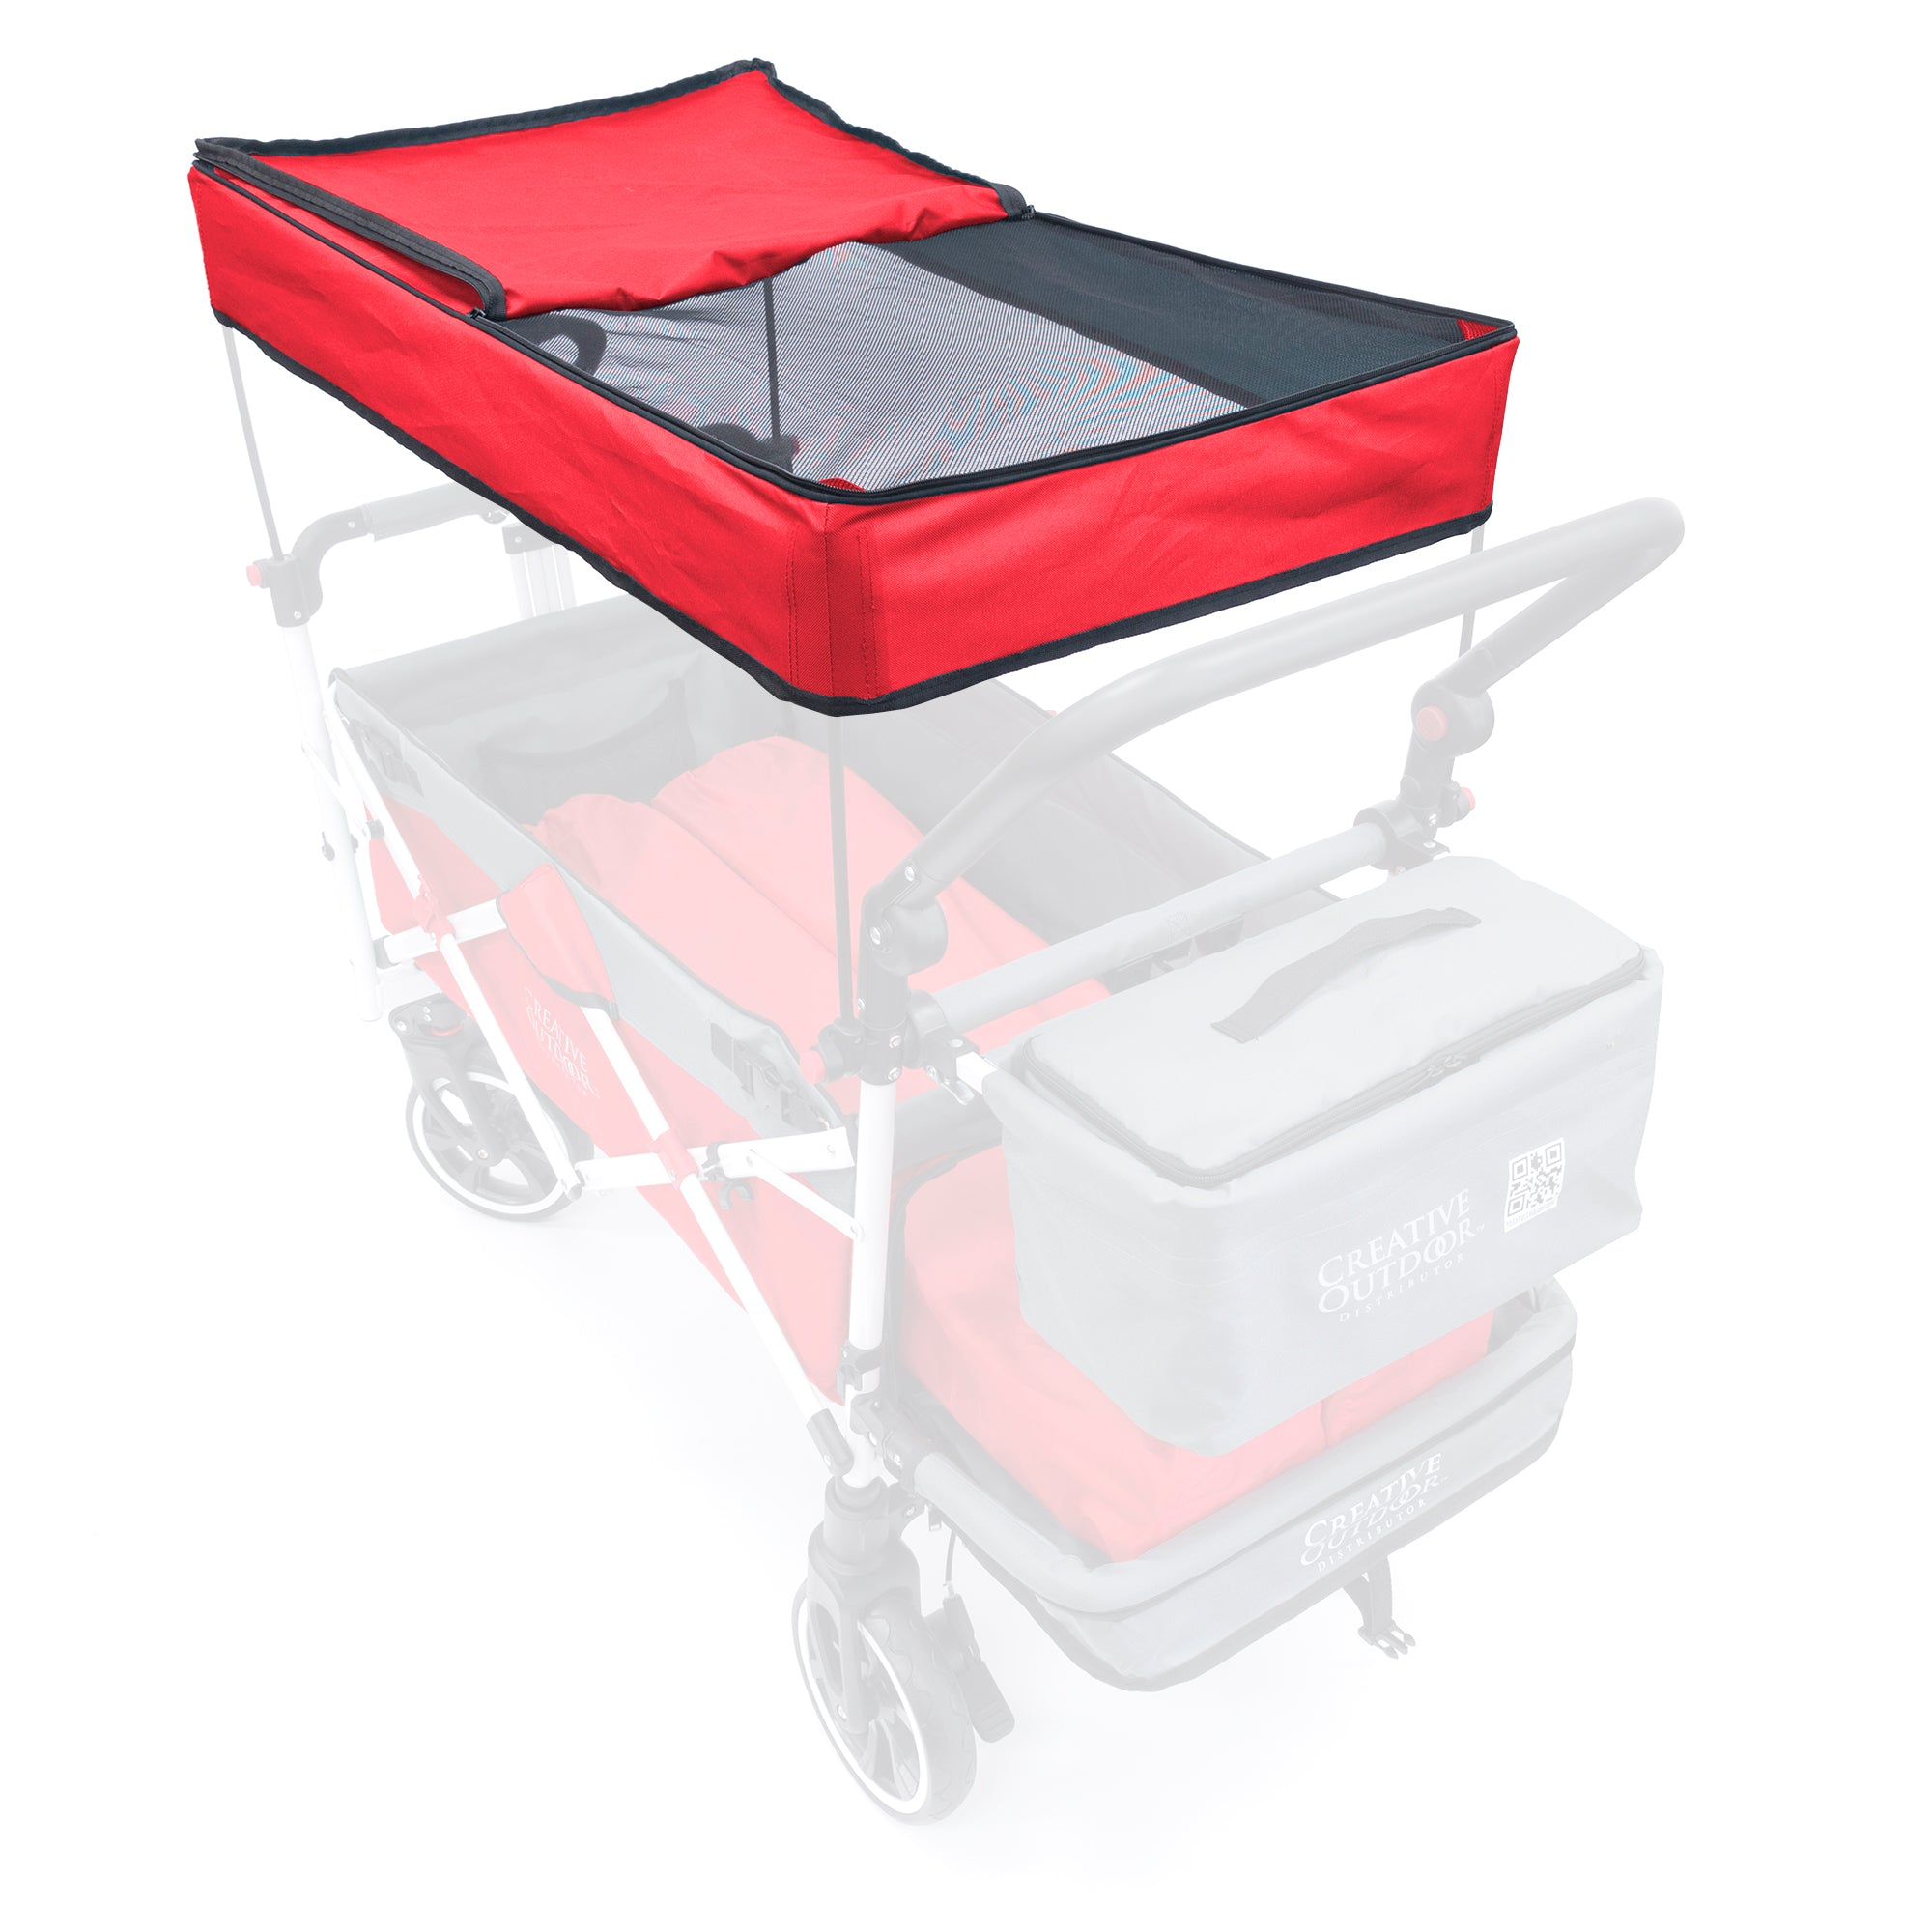 Push Pull Folding Wagon Titanium Series Replacement Canopy - Red